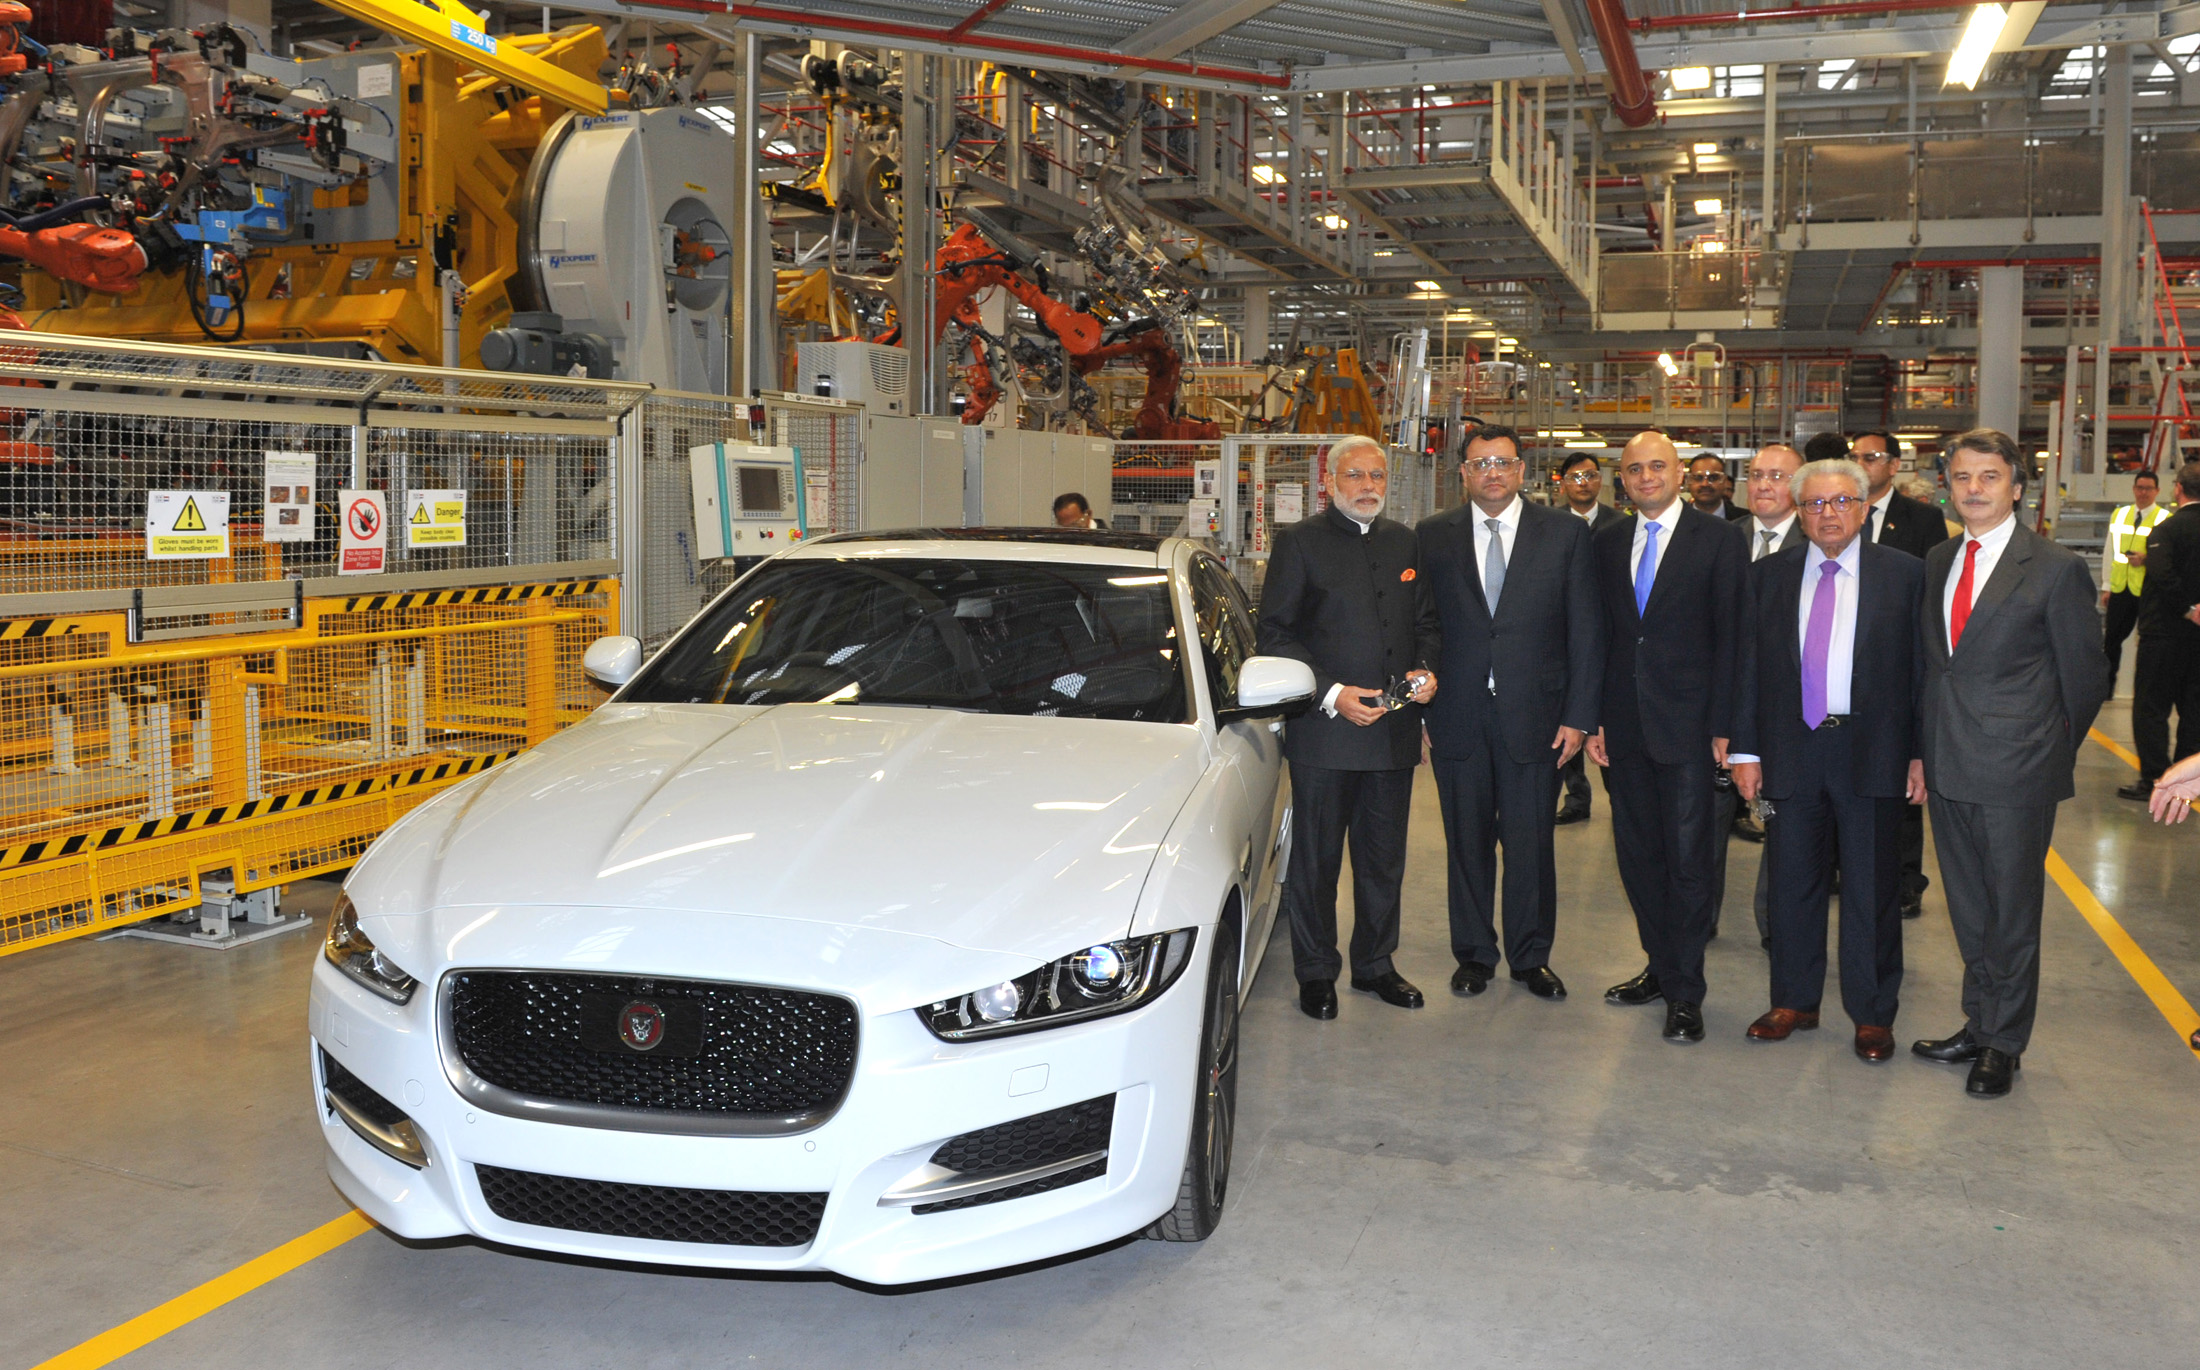 American Demand for British Cars Up 50%- PM Modi at Jaguar Land Rover Plant